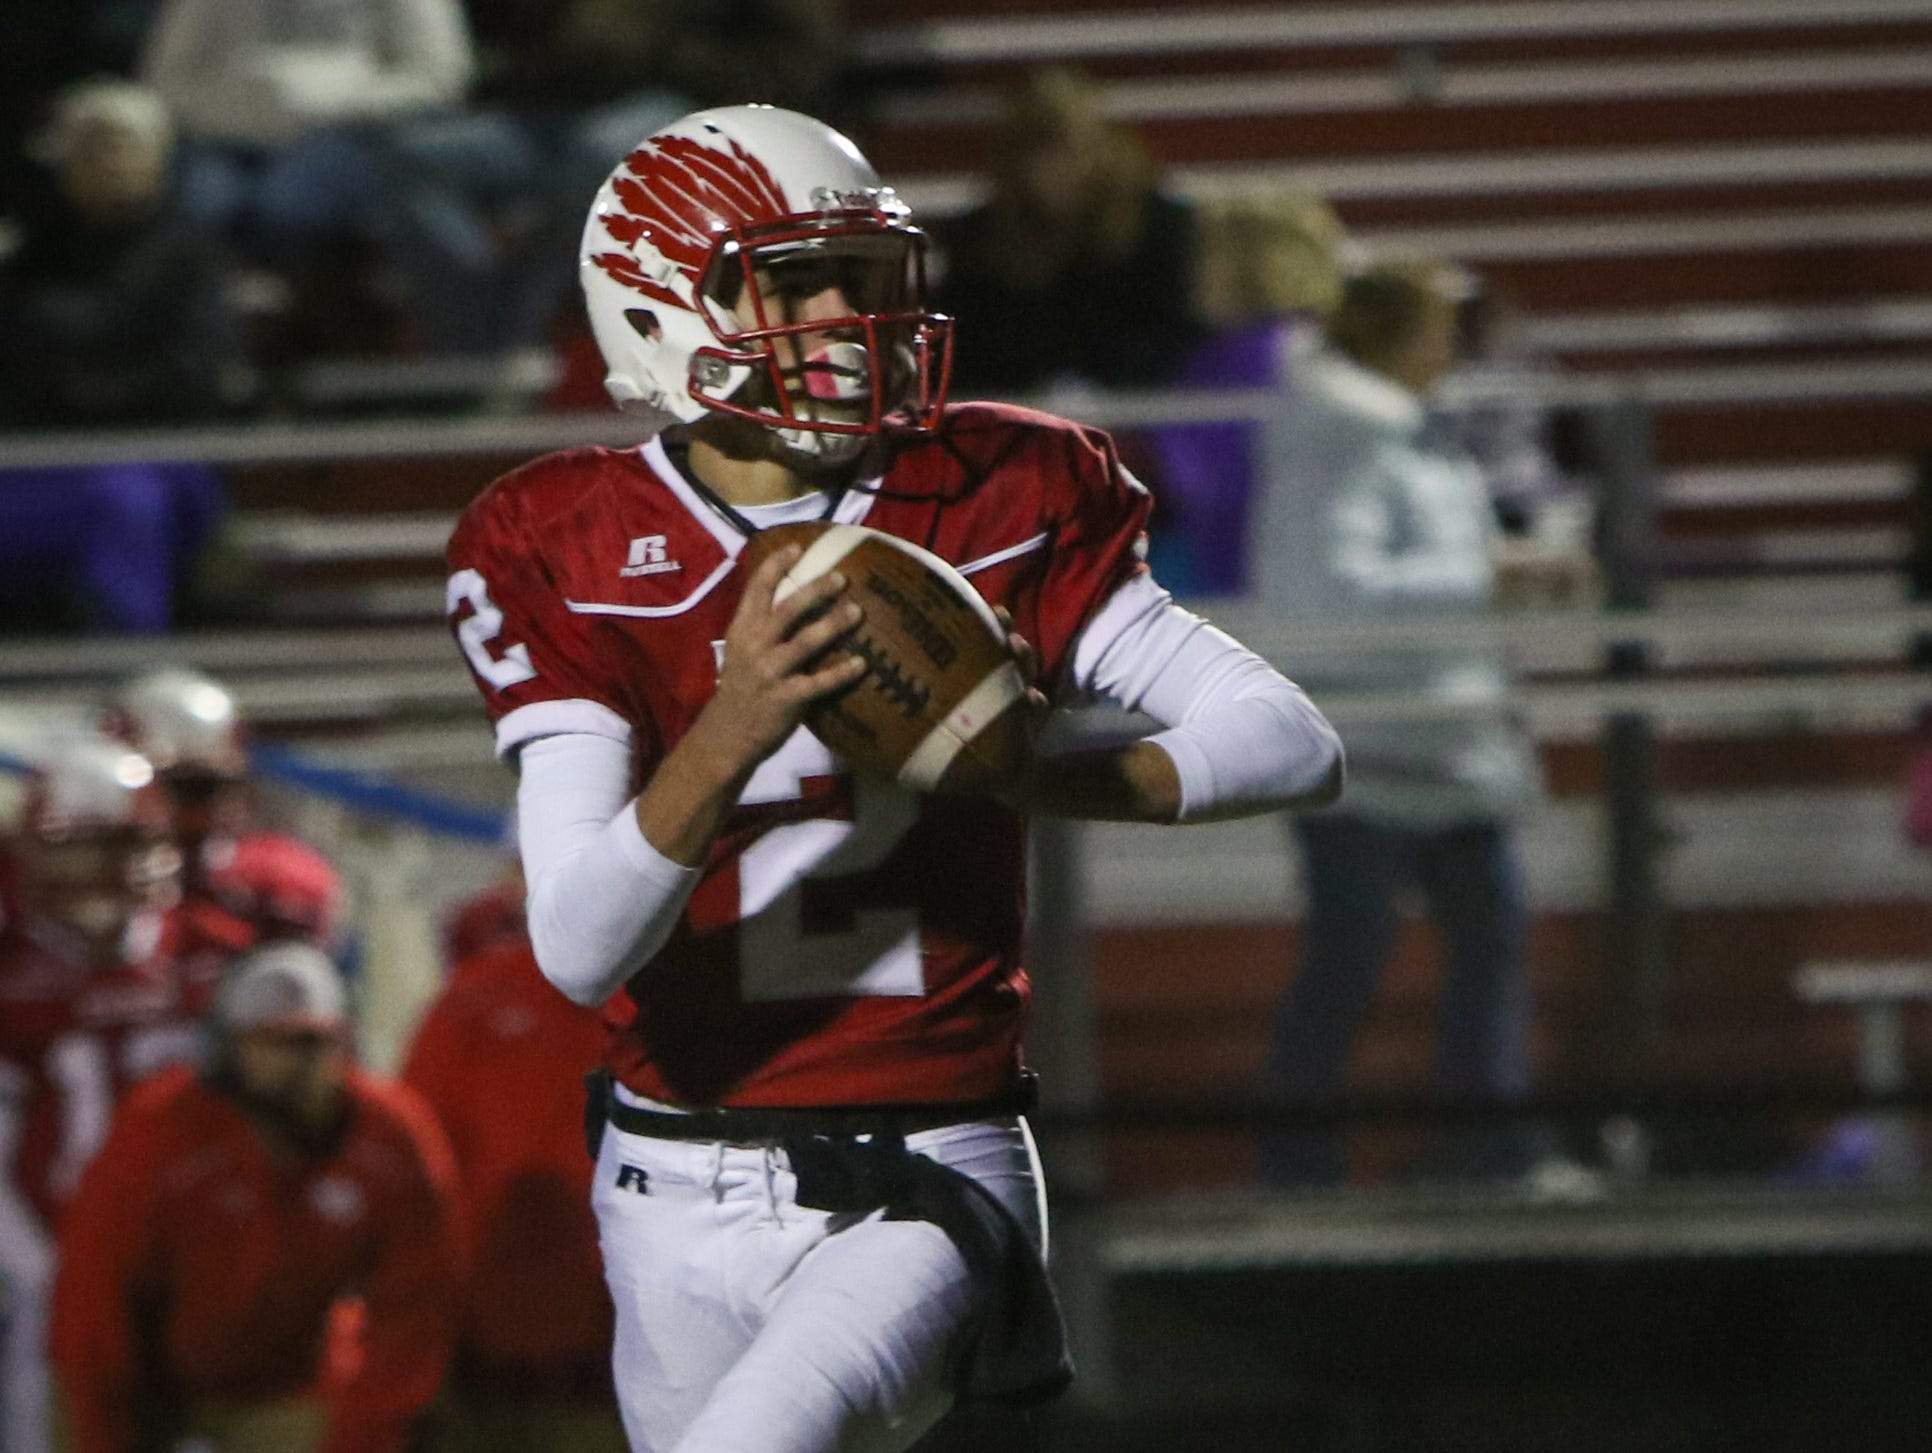 Smyrna quarterback Nolan Henderson rolls out for a pass in the third quarter. Smyrna defeats previously undefeated Sussex Tech 42-0 at Smyrna Saturday.